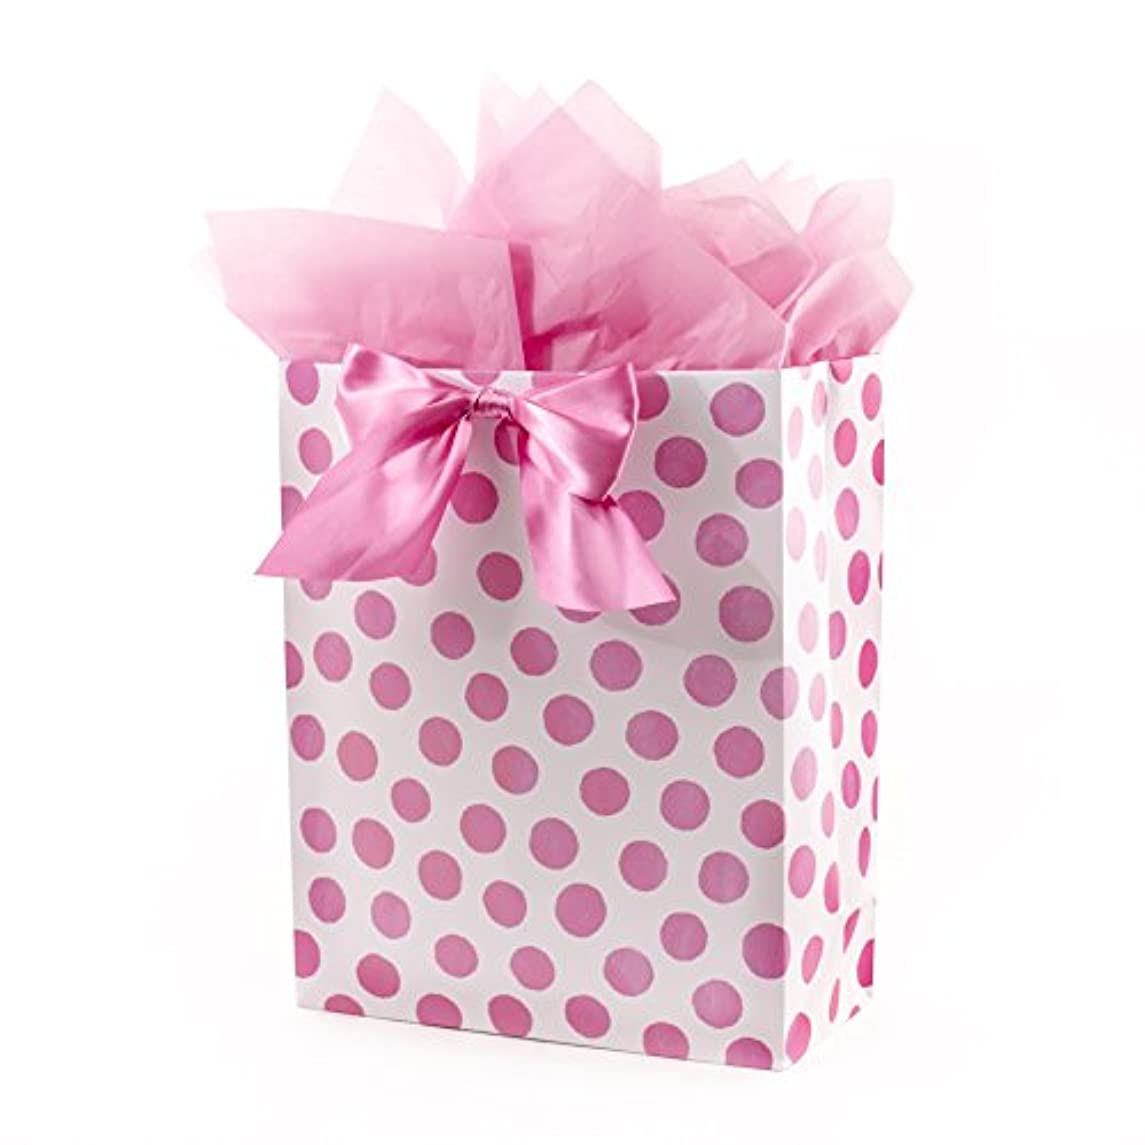 Hallmark Extra Large Gift Bag with Tissue Paper for Birthdays, Baby Showers, Bridal Showers and More (Pink Polka Dots and Bow)